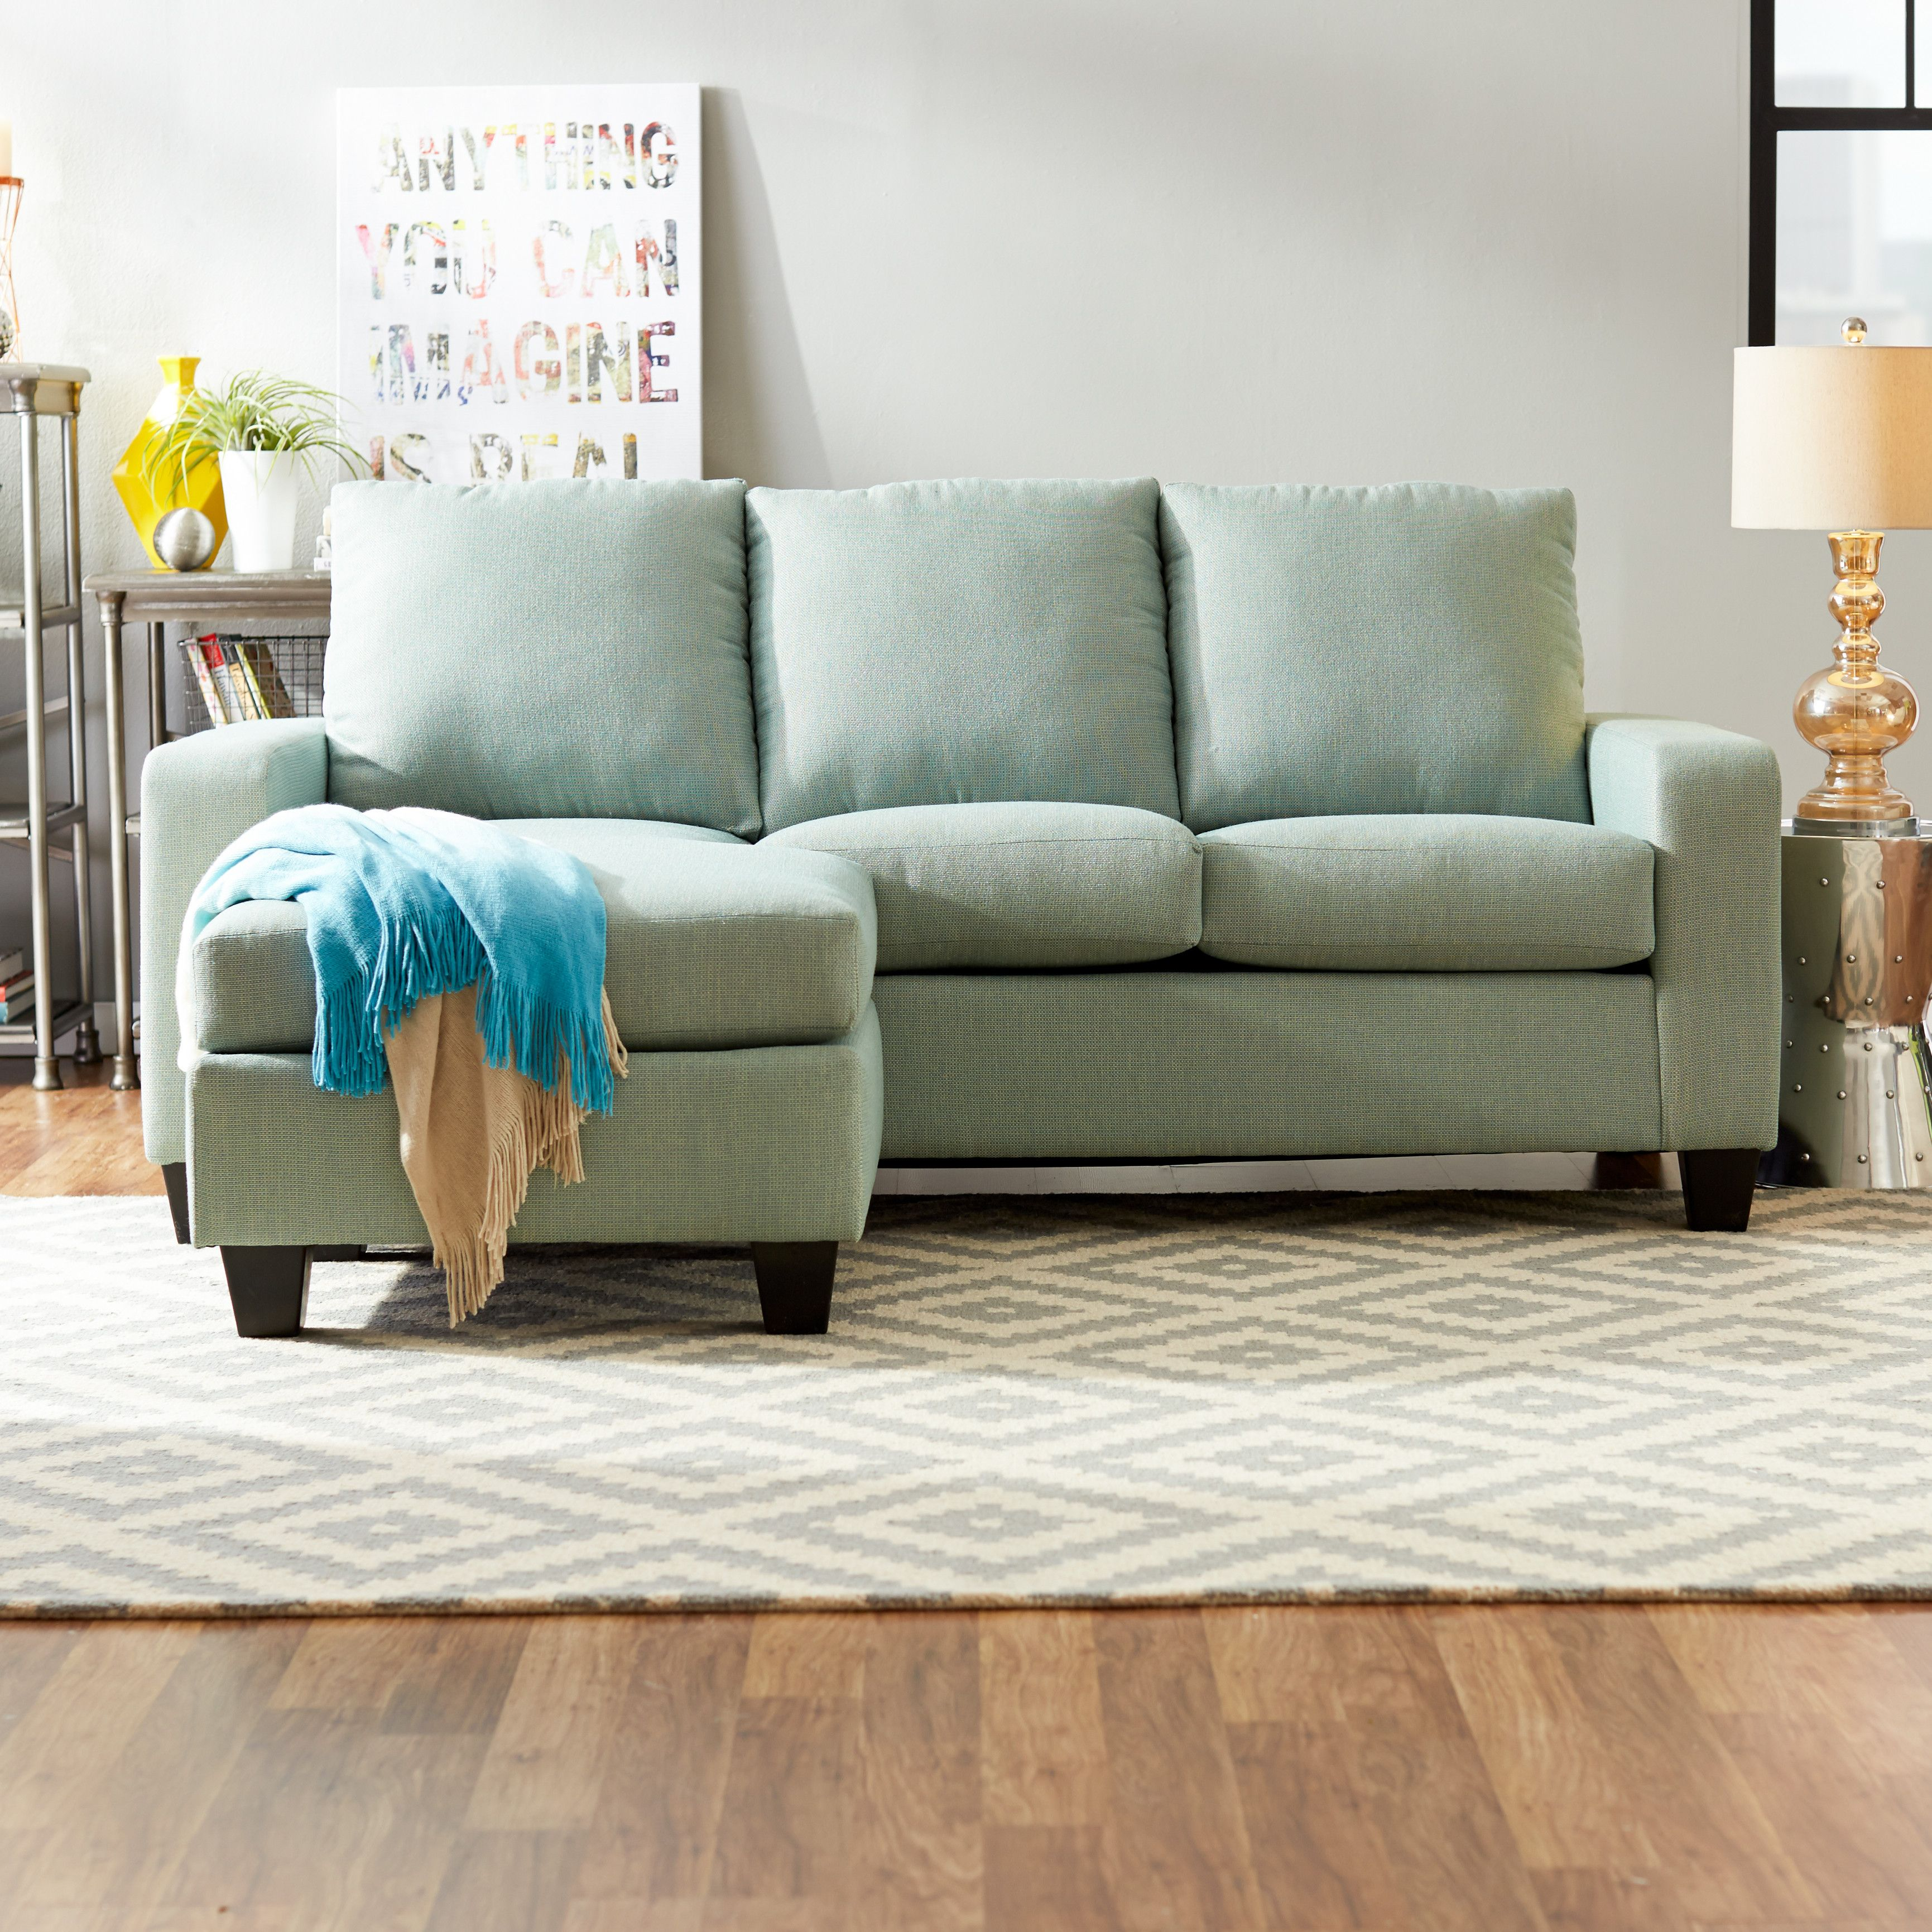 Sectional Sofas - Shop Sectionals in All Styles Youu0027ll Love | Wayfair : shop sectional sofas - Sectionals, Sofas & Couches